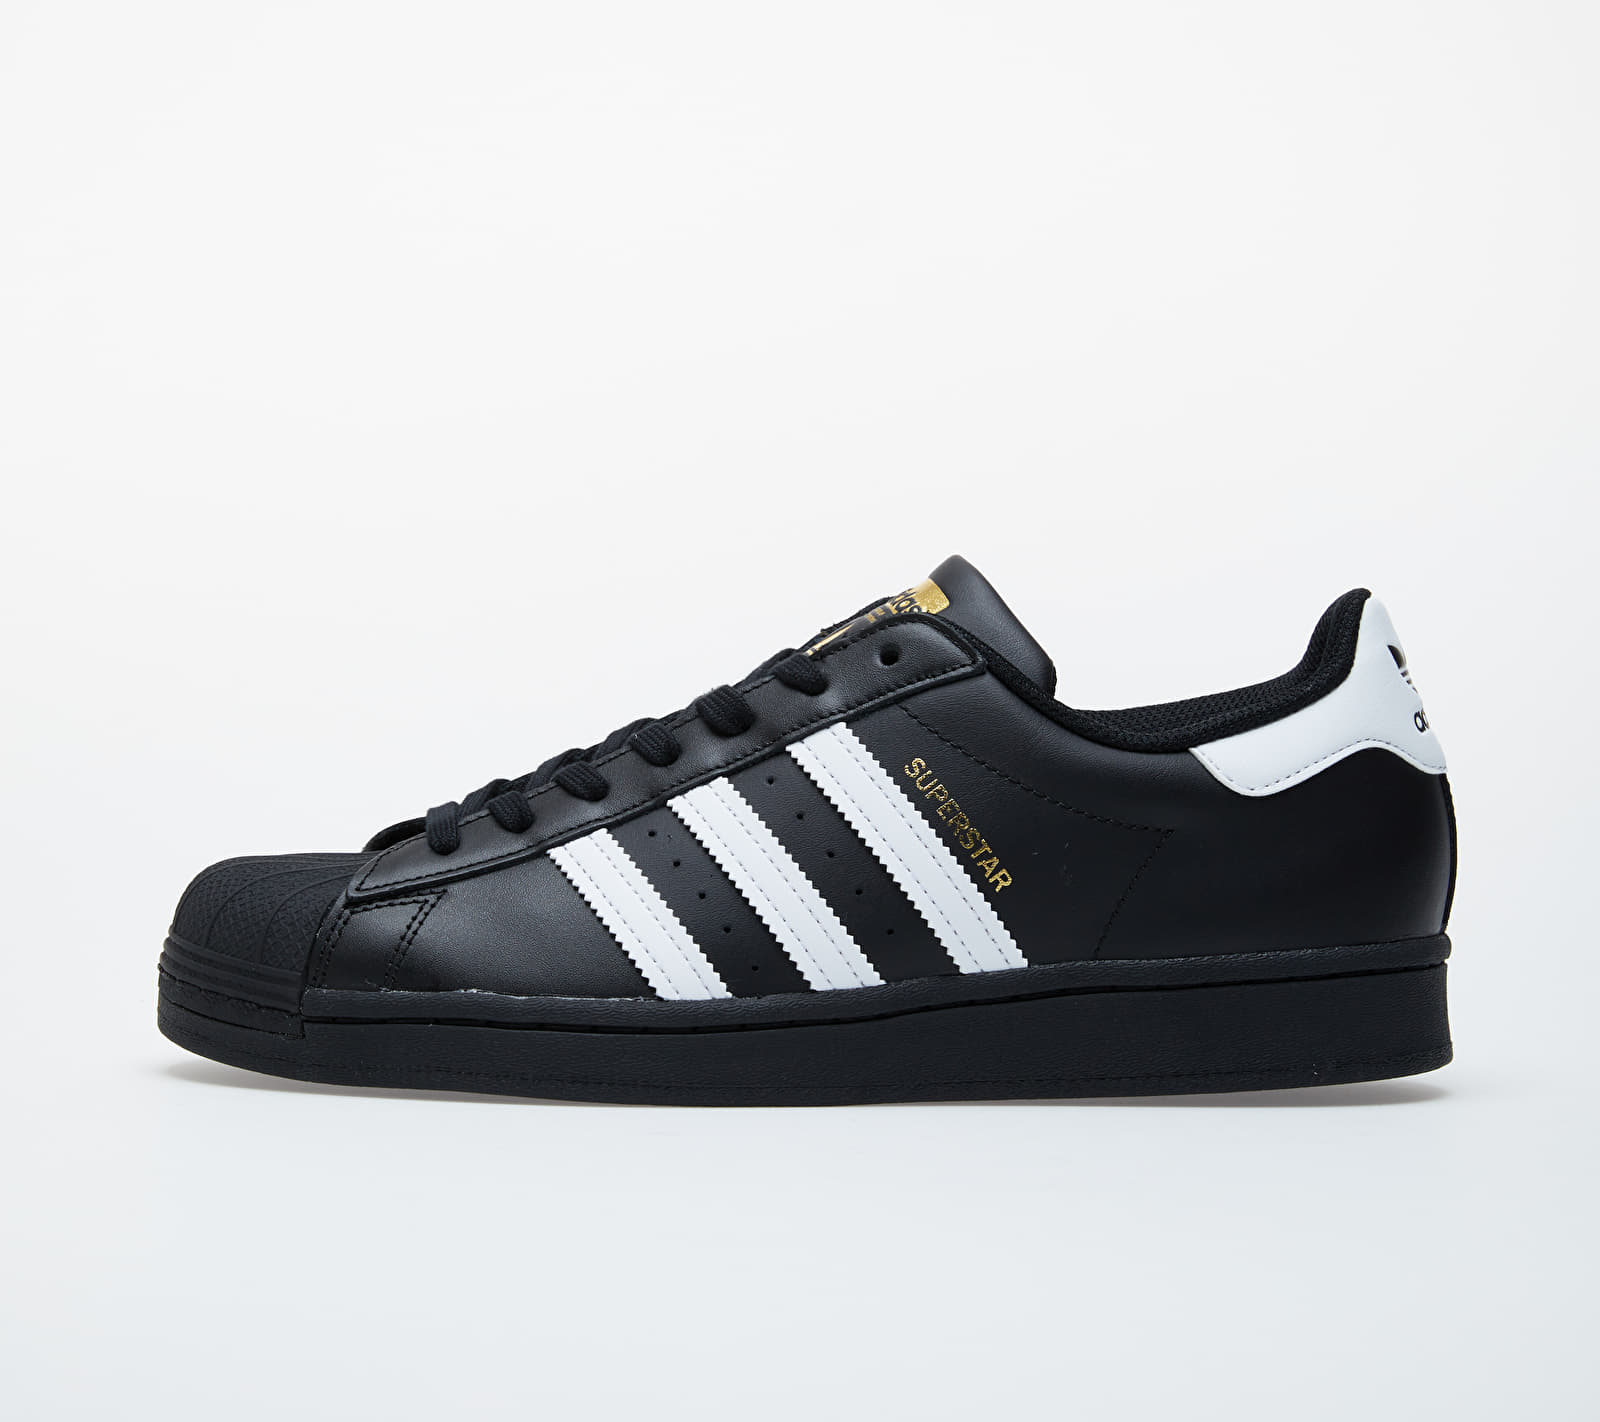 adidas Superstar Core Black/ Ftw White/ Core Black EUR 40